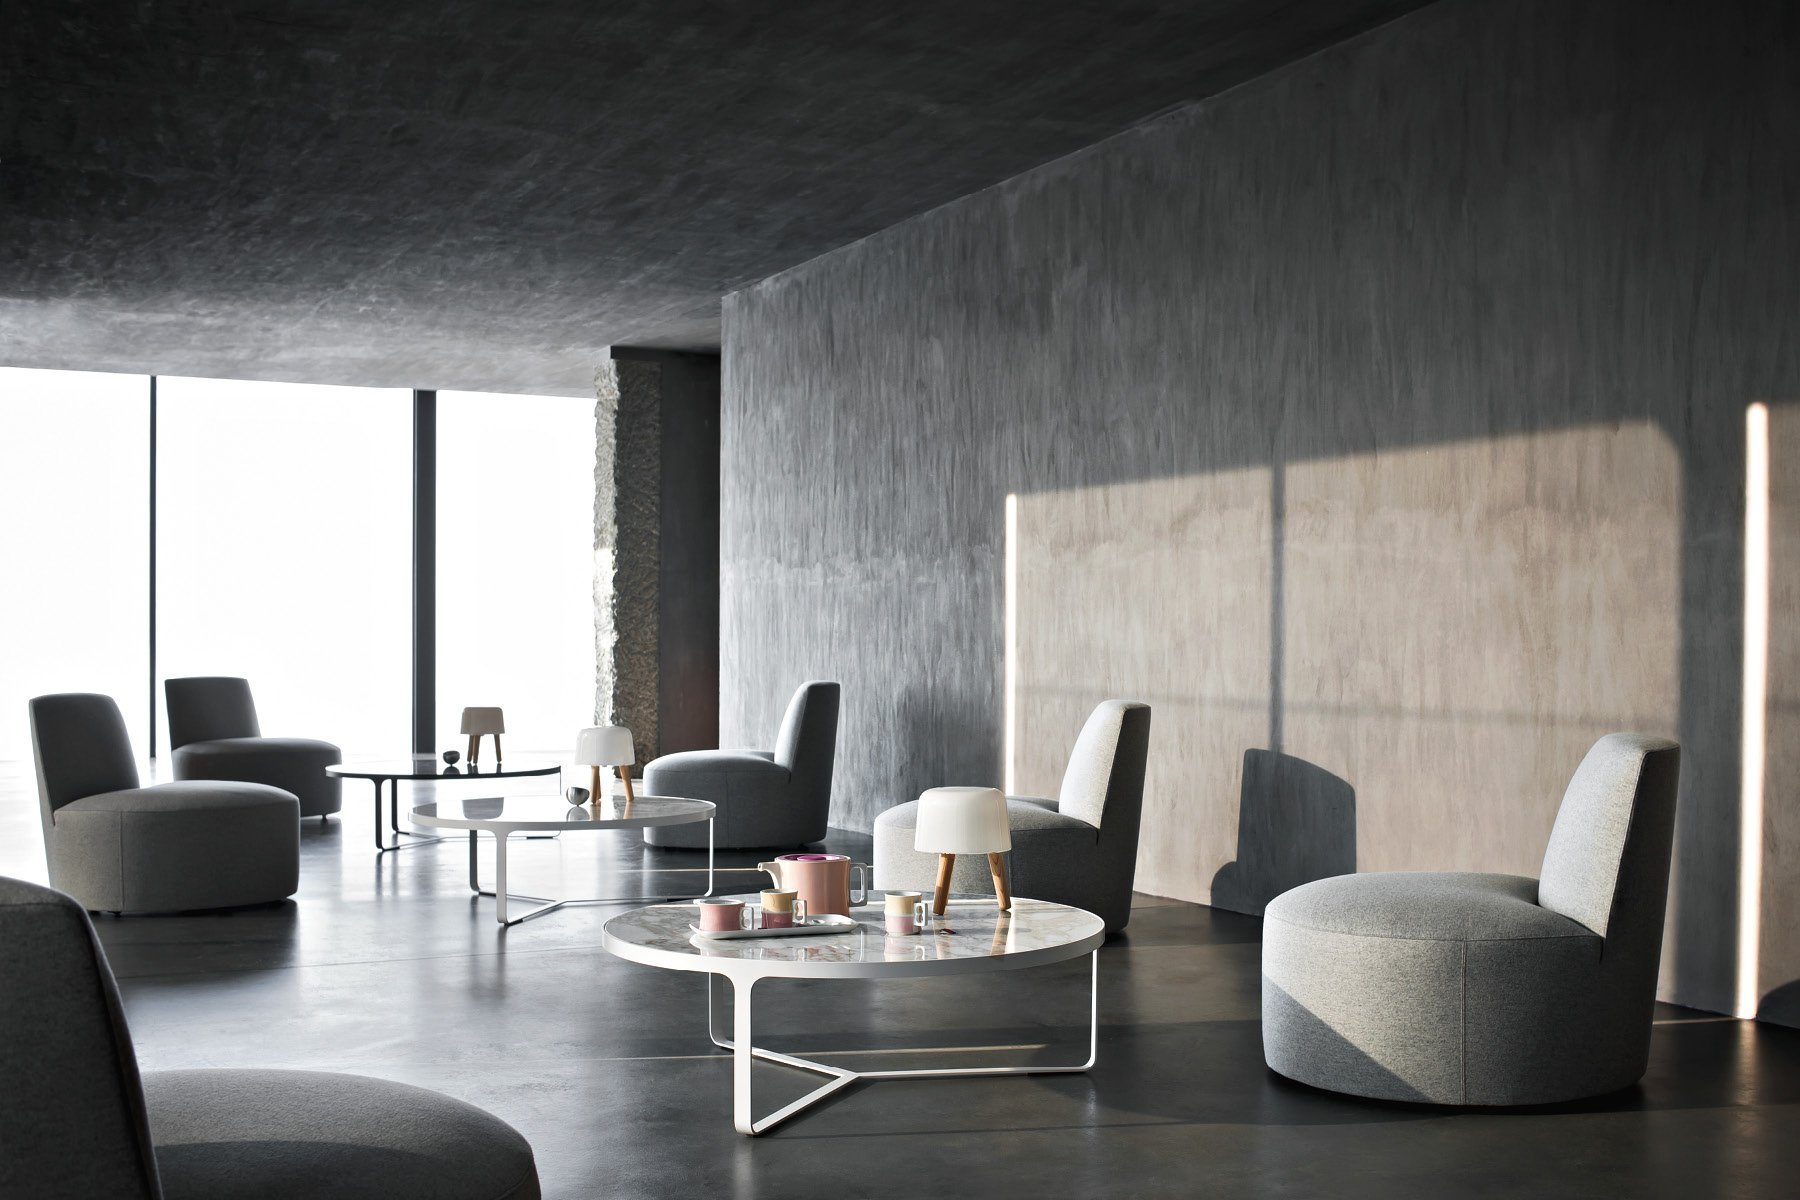 Baobab Chair lounge from Tacchini, designed by Lievore Altherr Molina